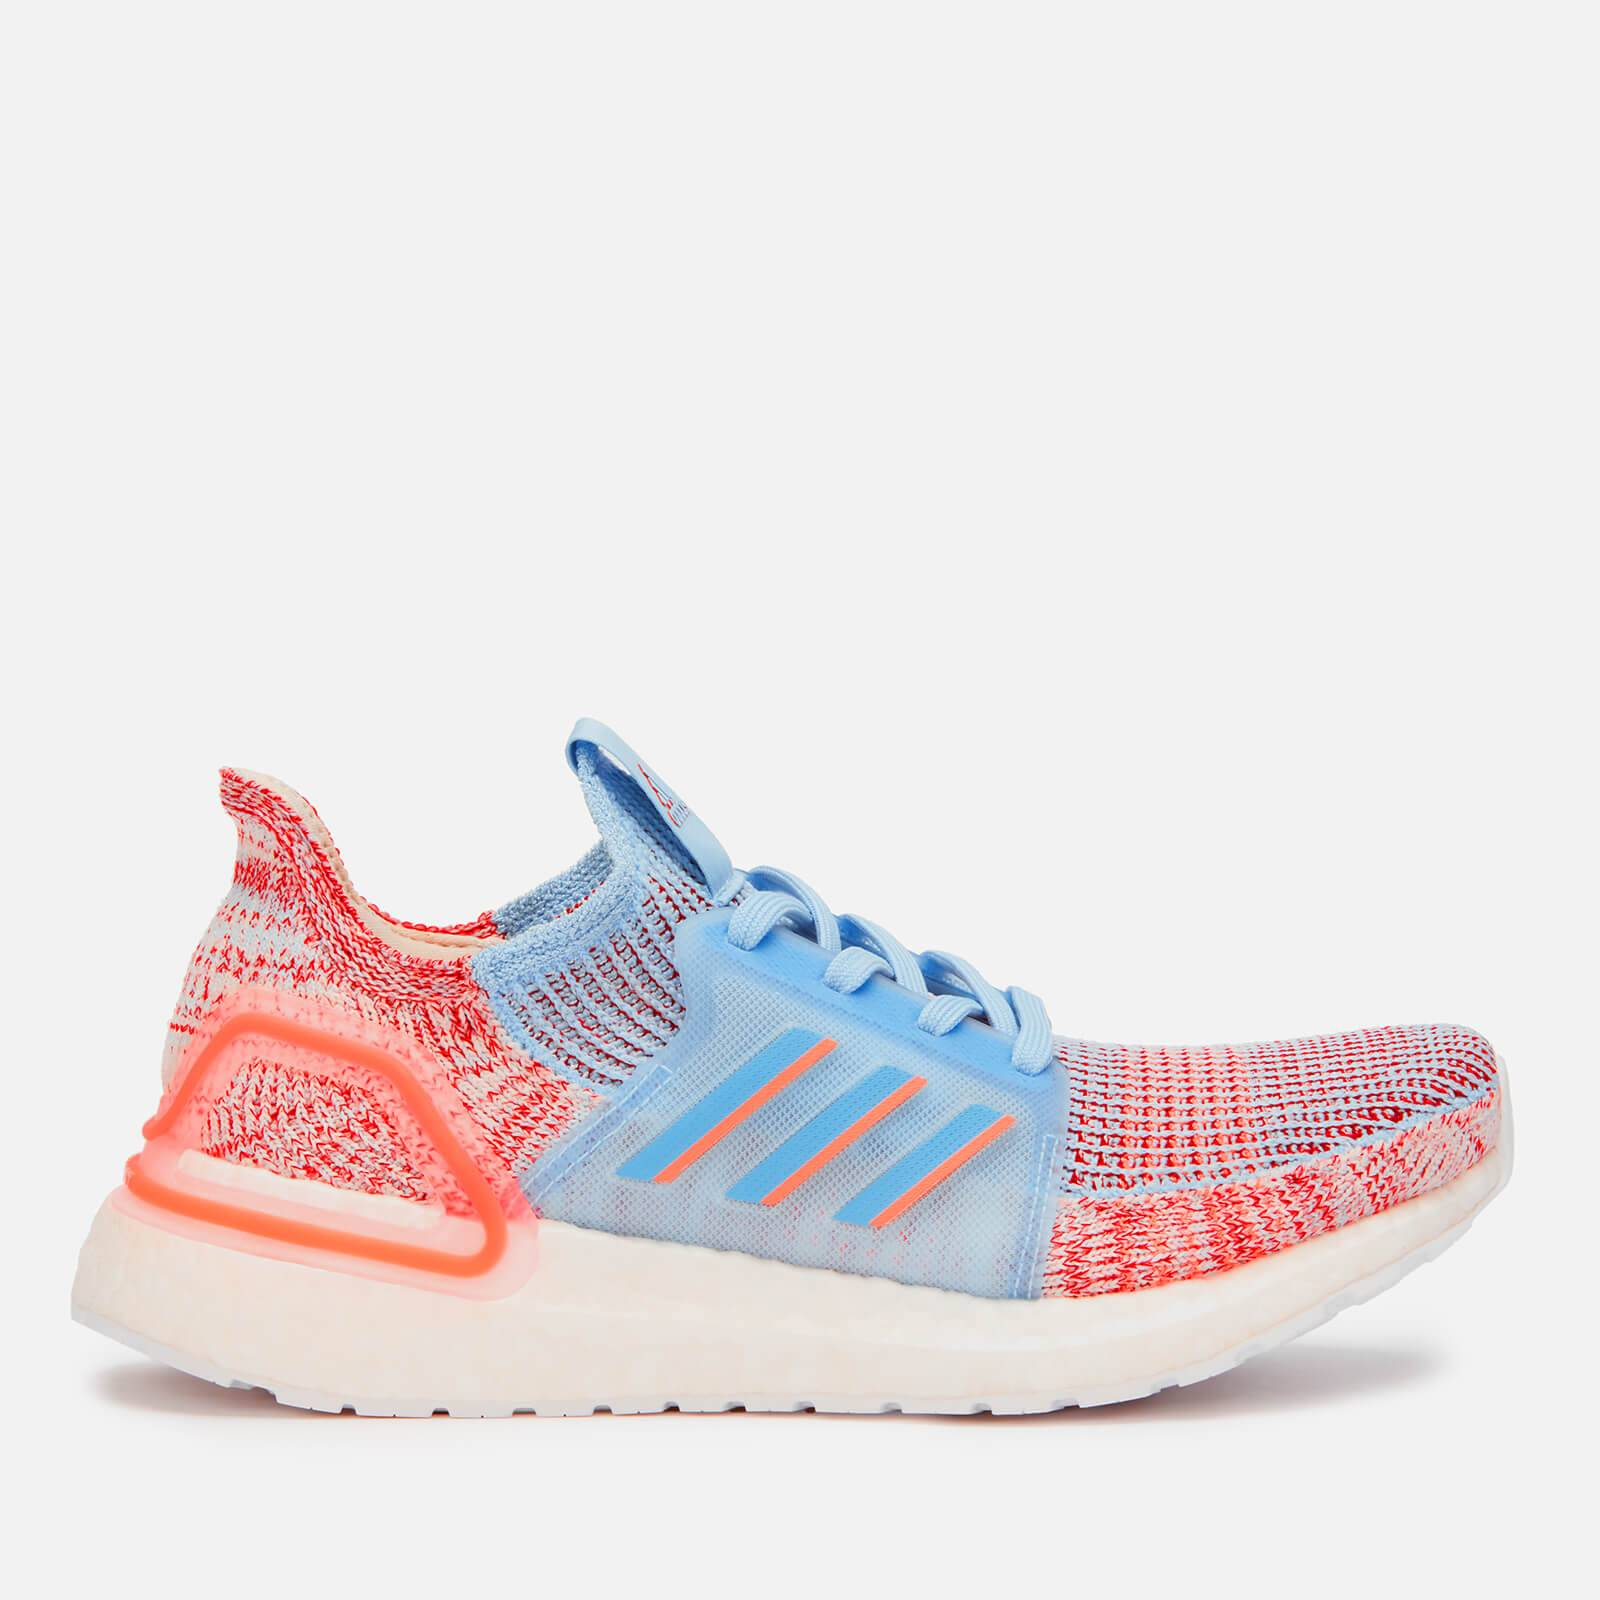 adidas Women's Ultraboost 19 Trainers - Blue/Orange - UK 7 - Multi